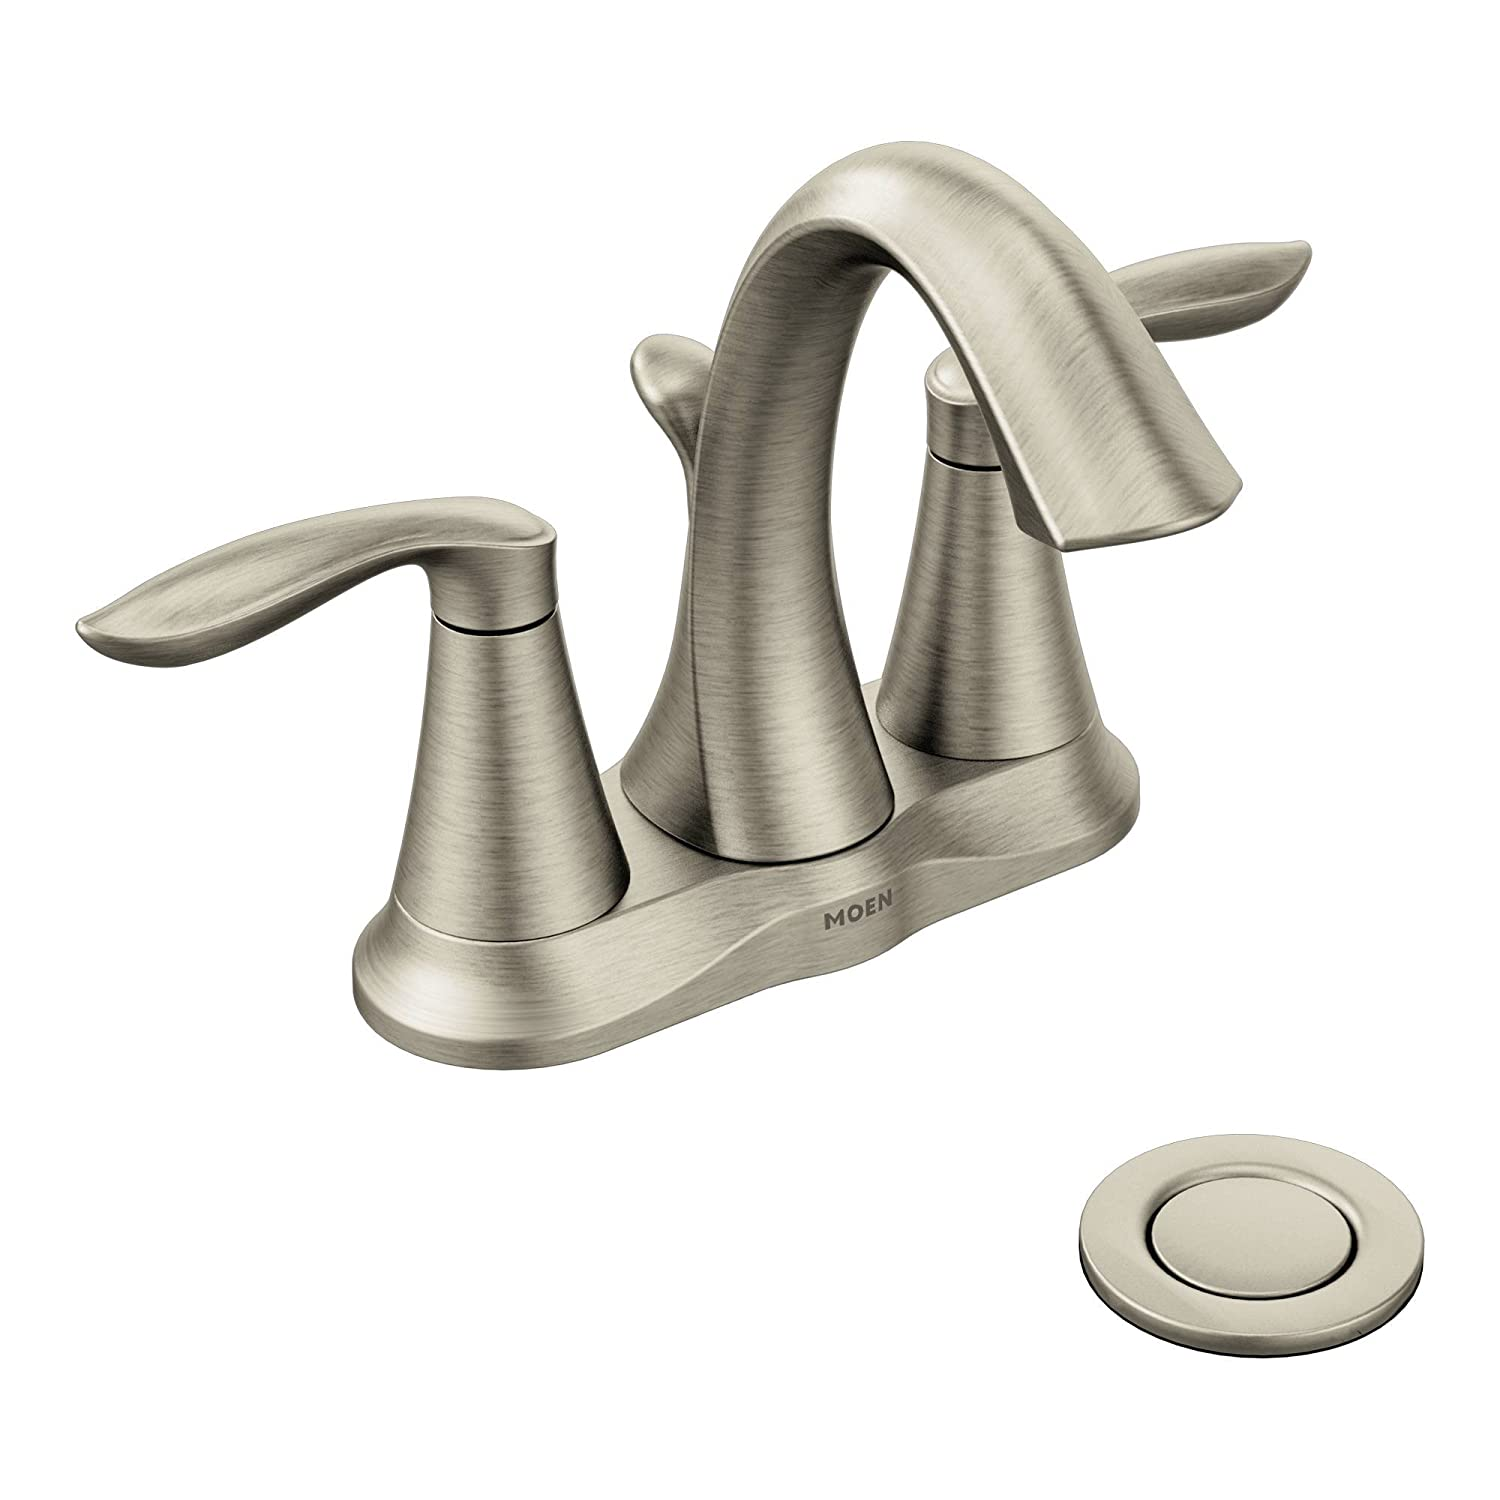 Delicieux Moen Eva Two Handle Centerset Bathroom Faucet With Drain Assembly, Brushed  Nickel (6410BN)   Touch On Bathroom Sink Faucets   Amazon.com